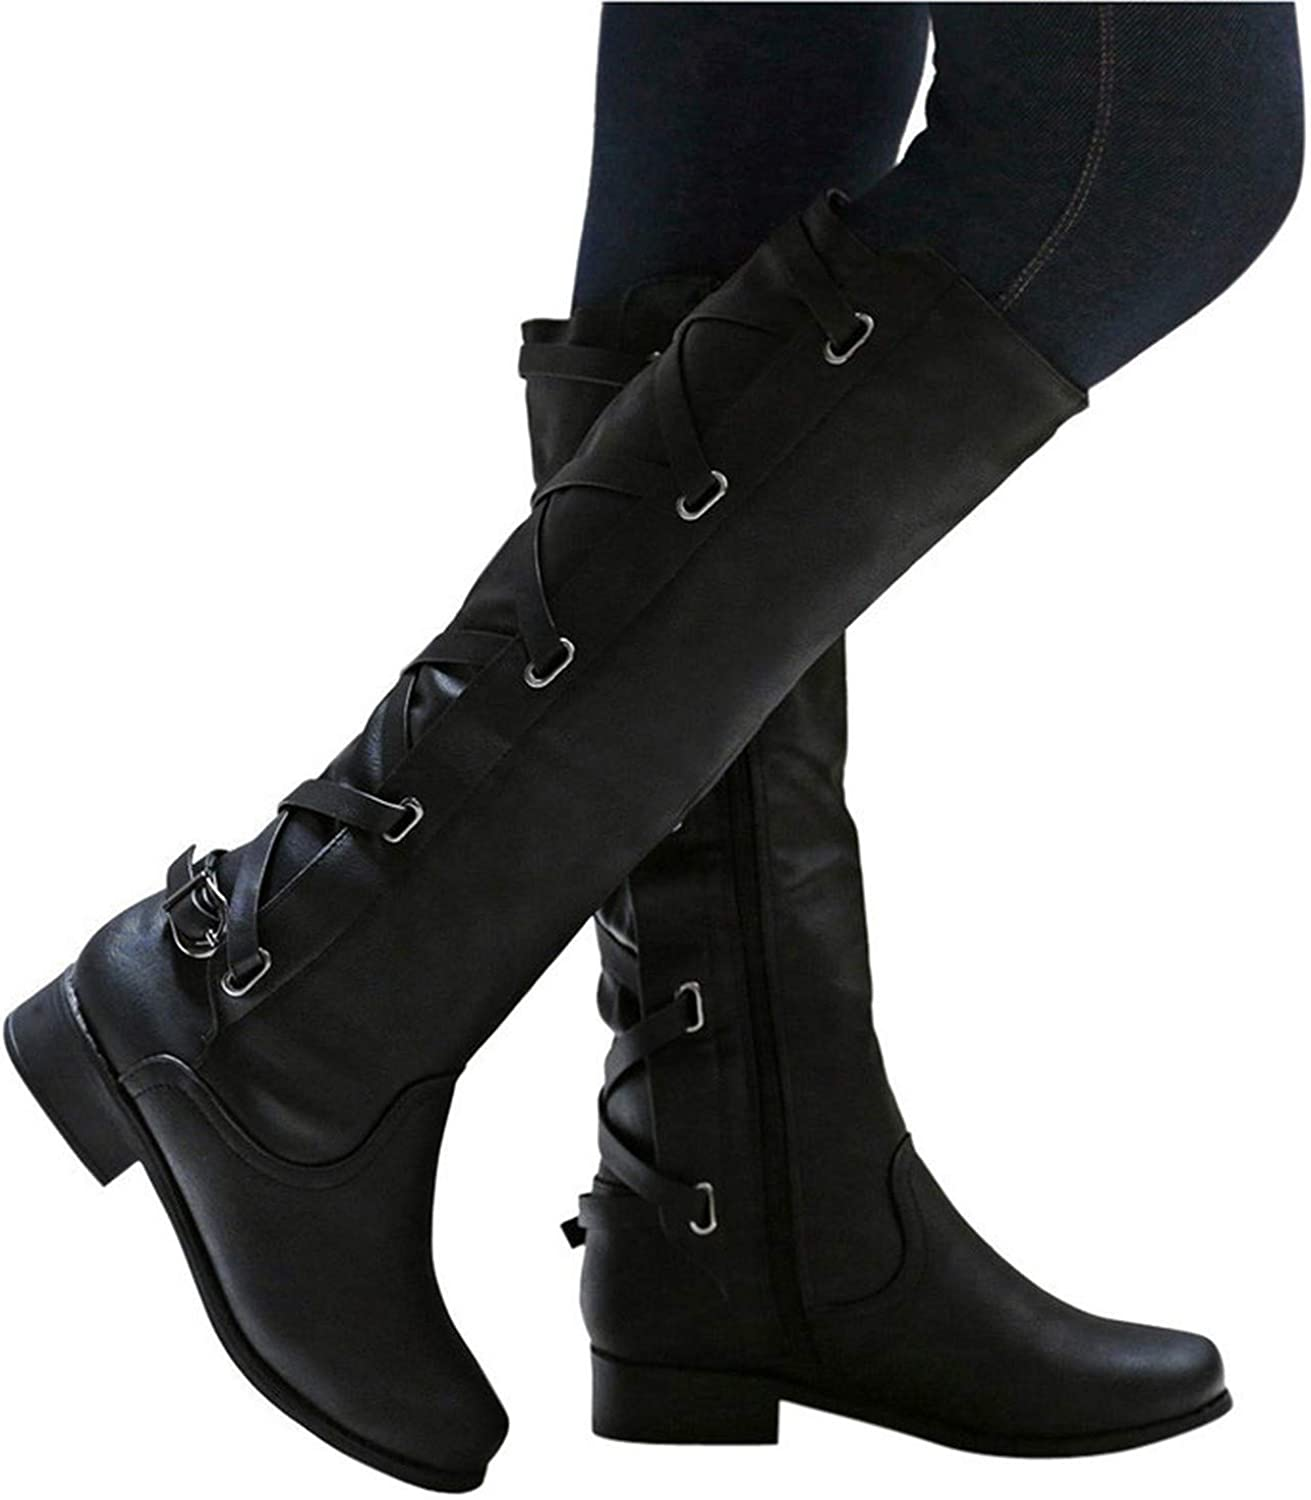 Don't mention the past Woman Buckle Roman Riding Knee High Cowboy Winter Boots Women Casual Long Boots Botas,Black,5.5,United States